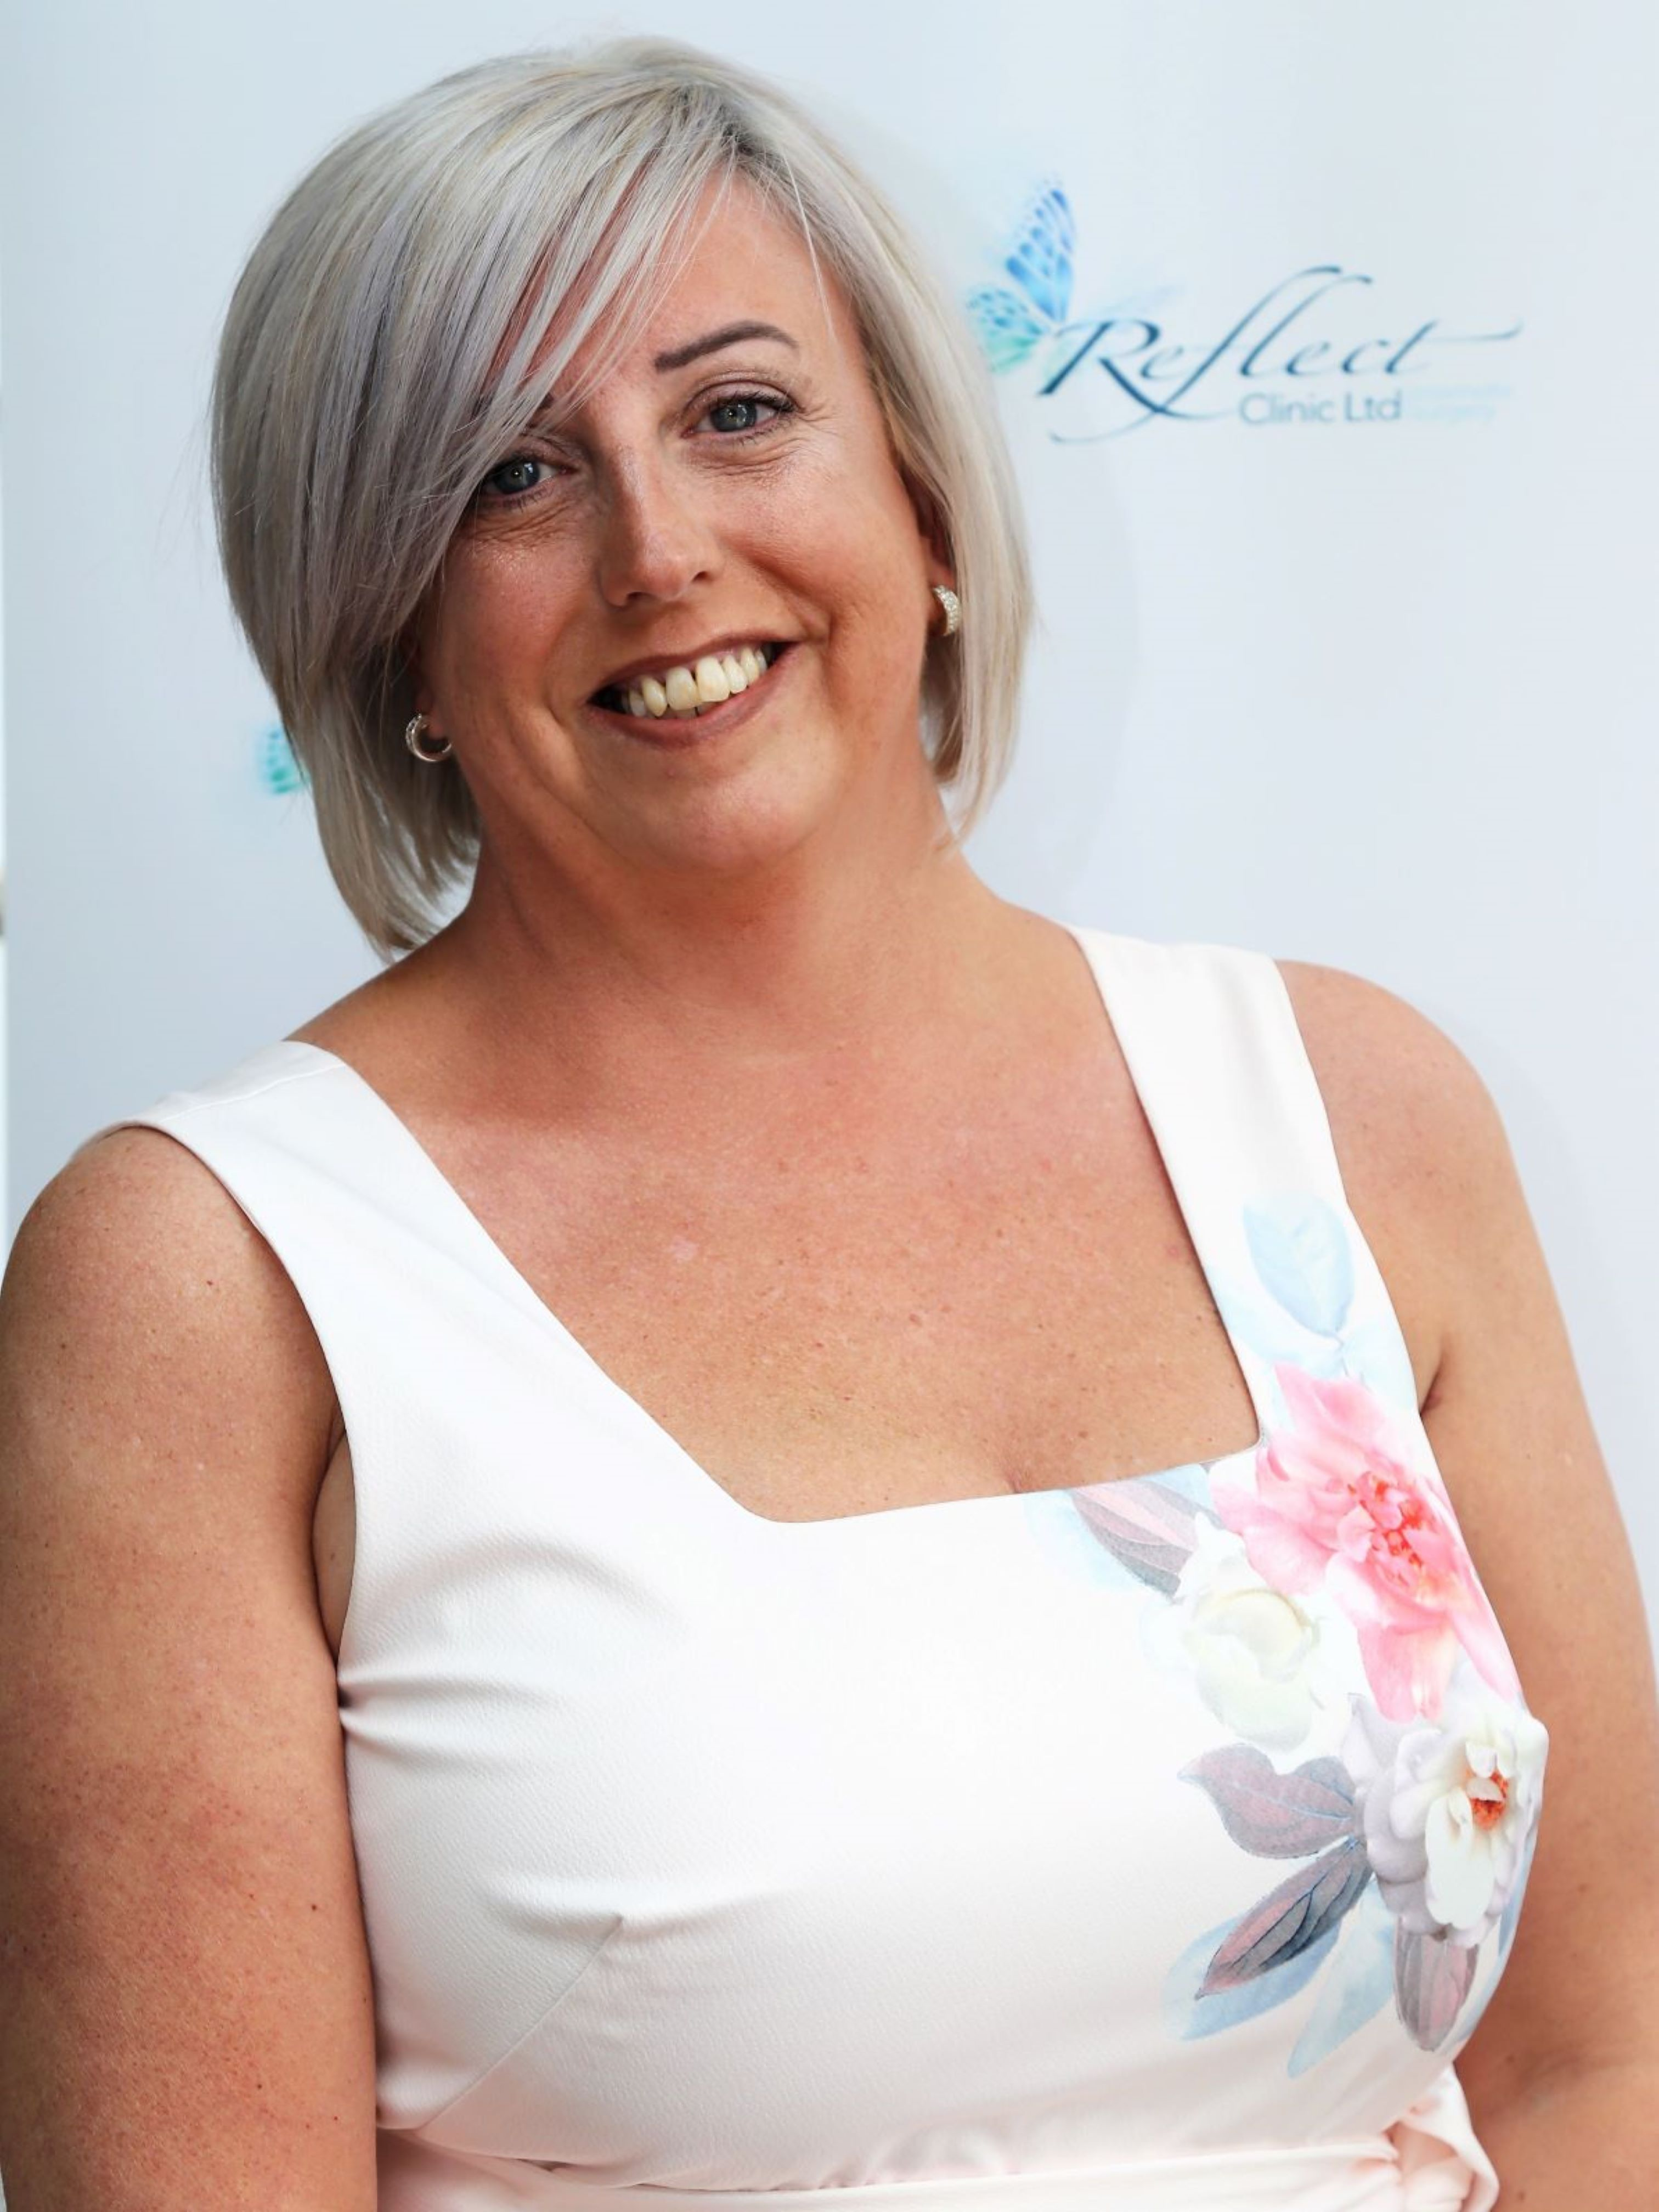 Jayne Clinic Manager